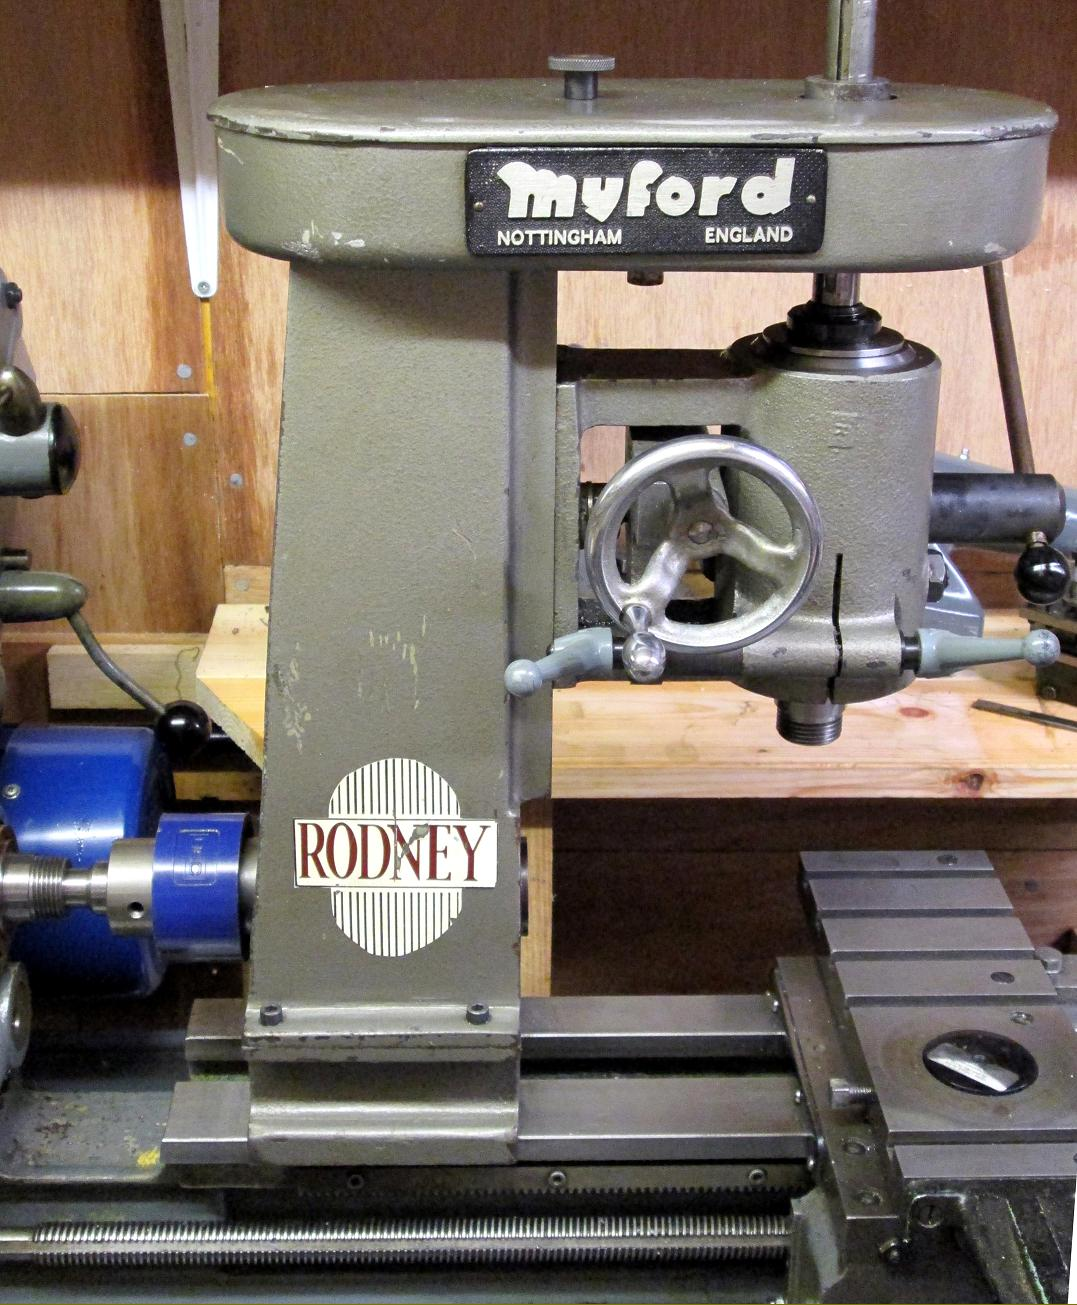 Rodney Milling Machine & Attachment